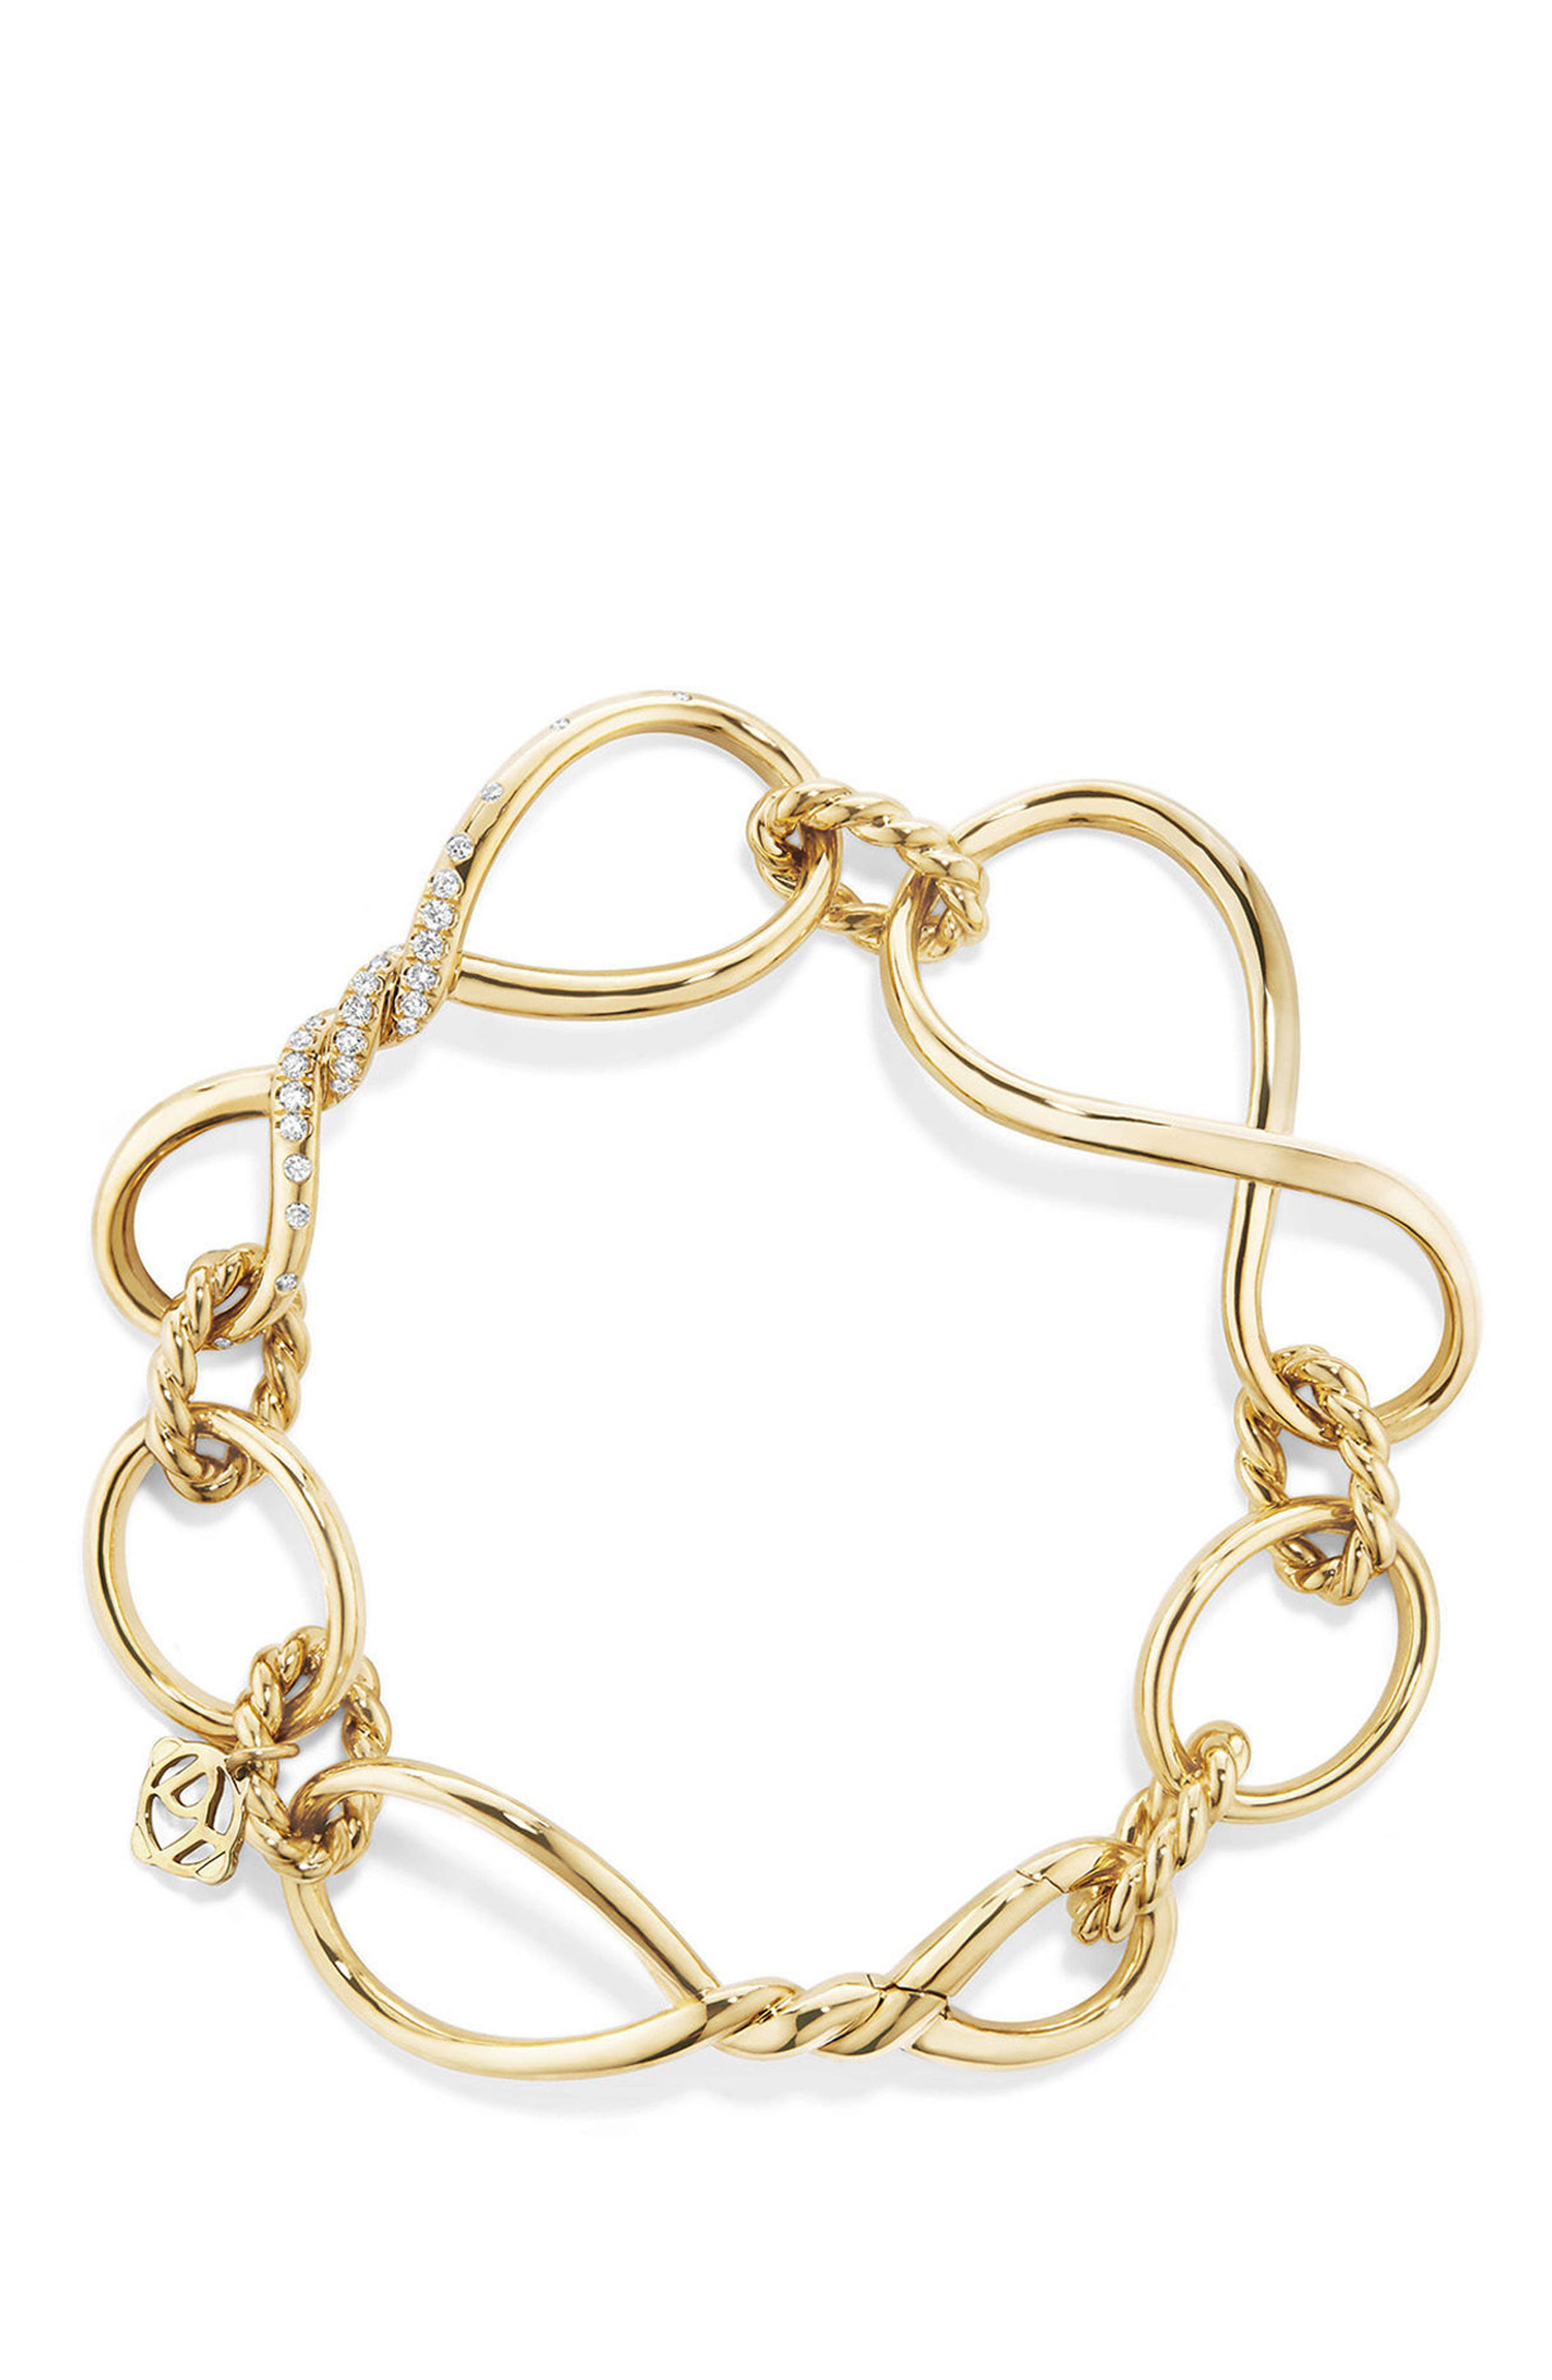 DAVID YURMAN,                             Continuance Chain Bracelet with Diamonds,                             Alternate thumbnail 3, color,                             YELLOW GOLD